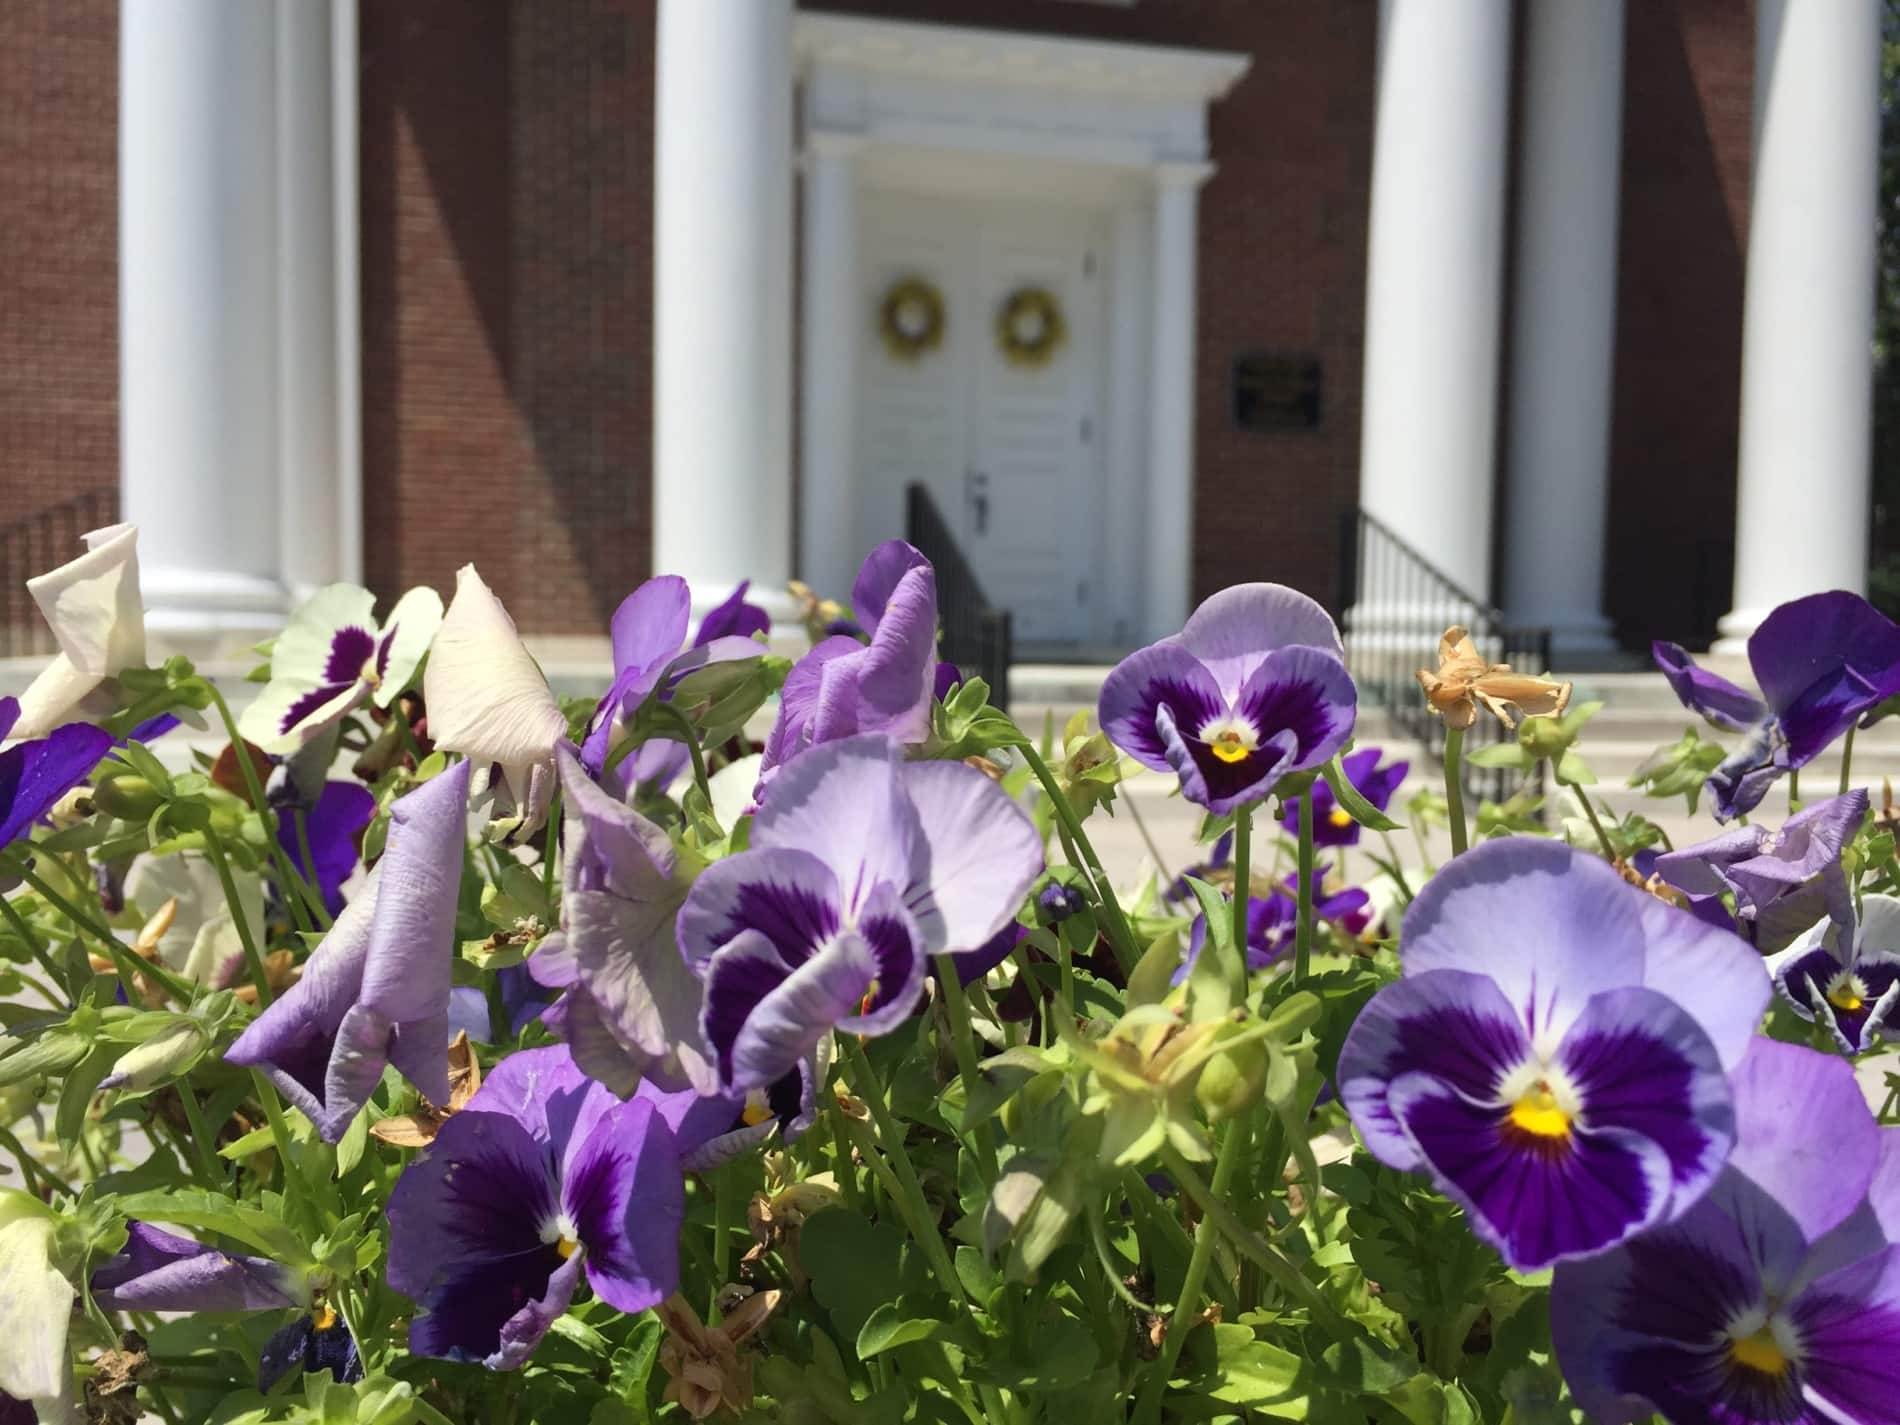 View of church portico with flowers in foreground